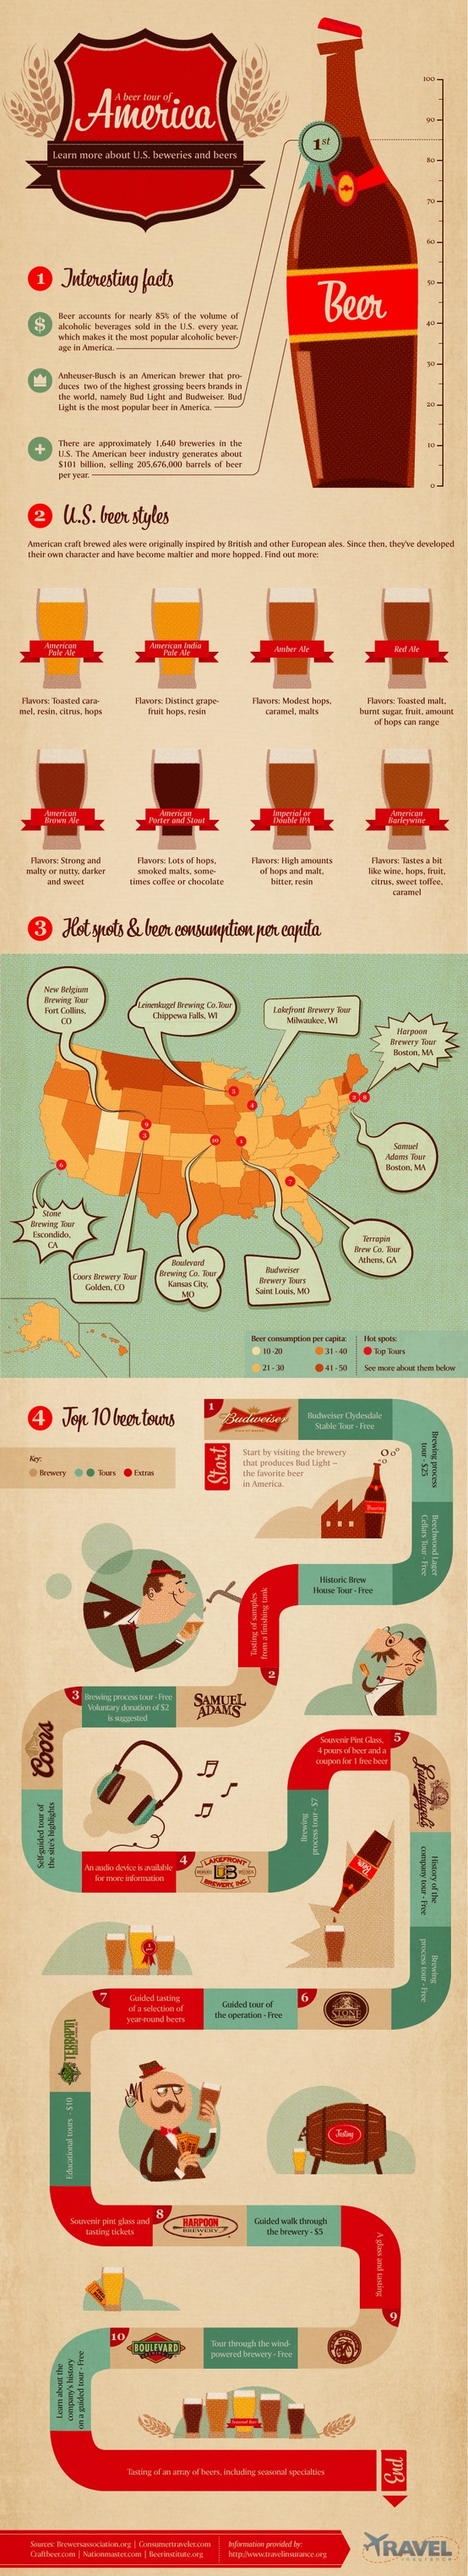 beer-tour-america